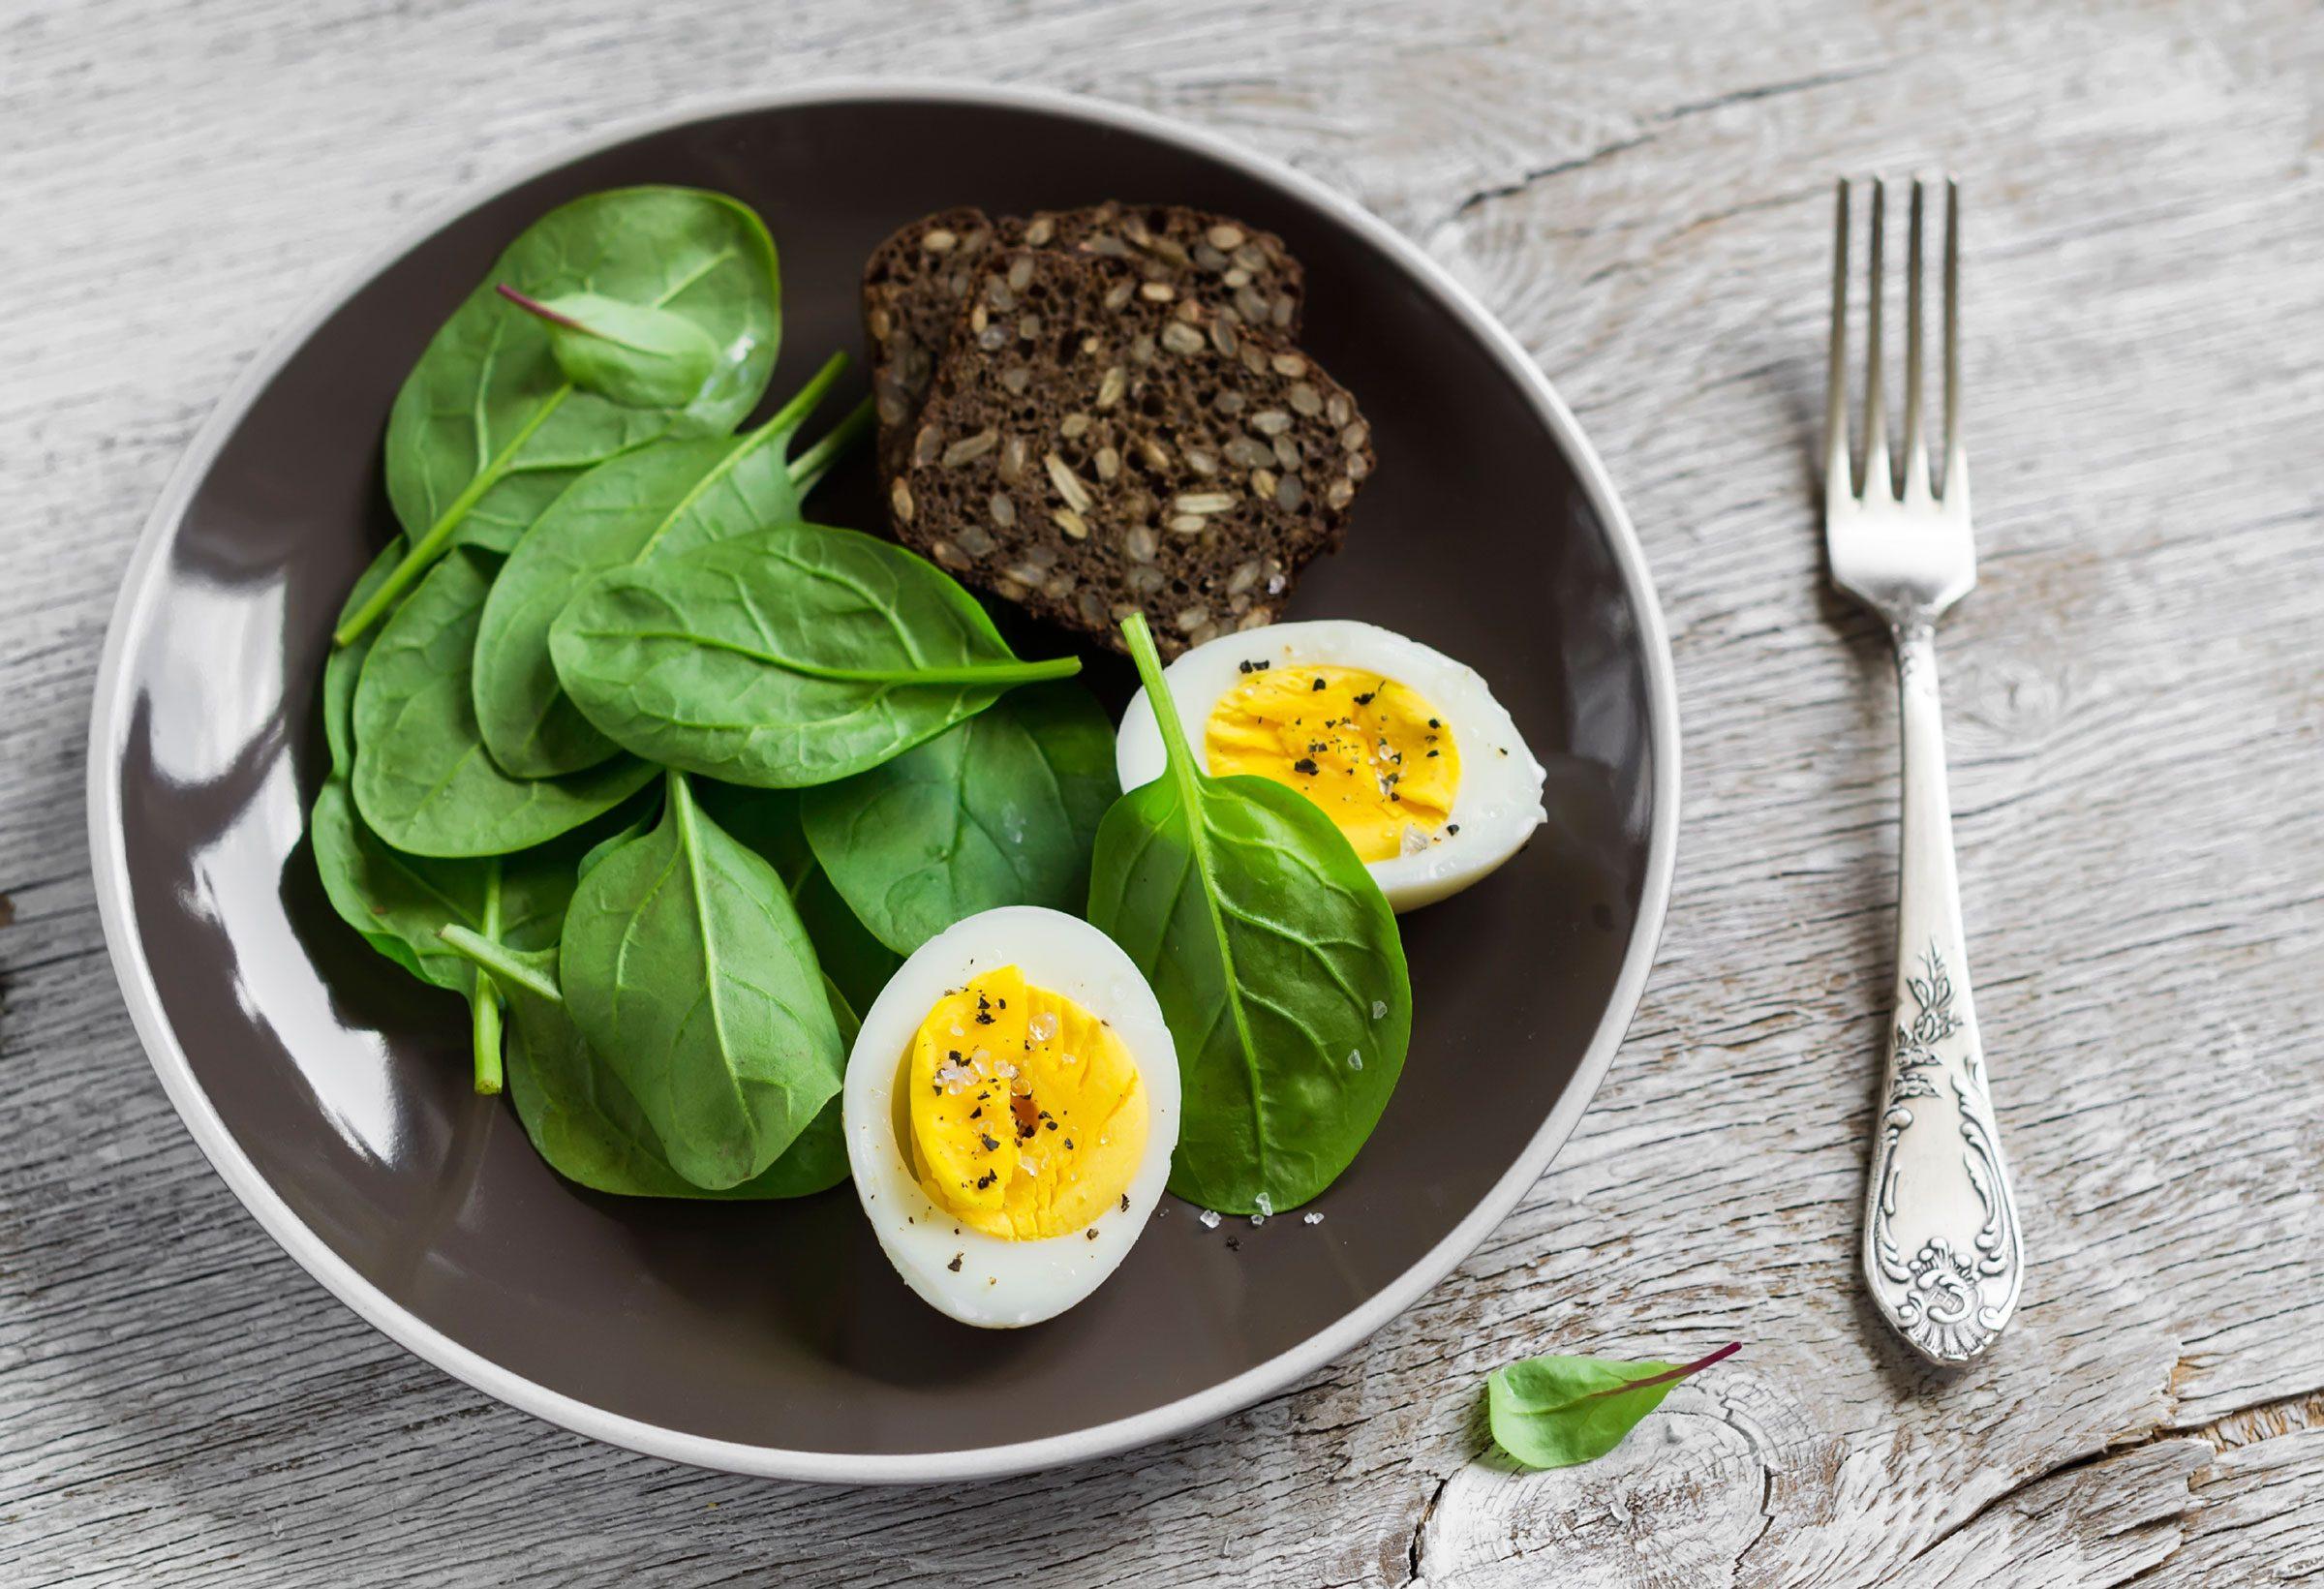 spinach with eggs and bran muffin